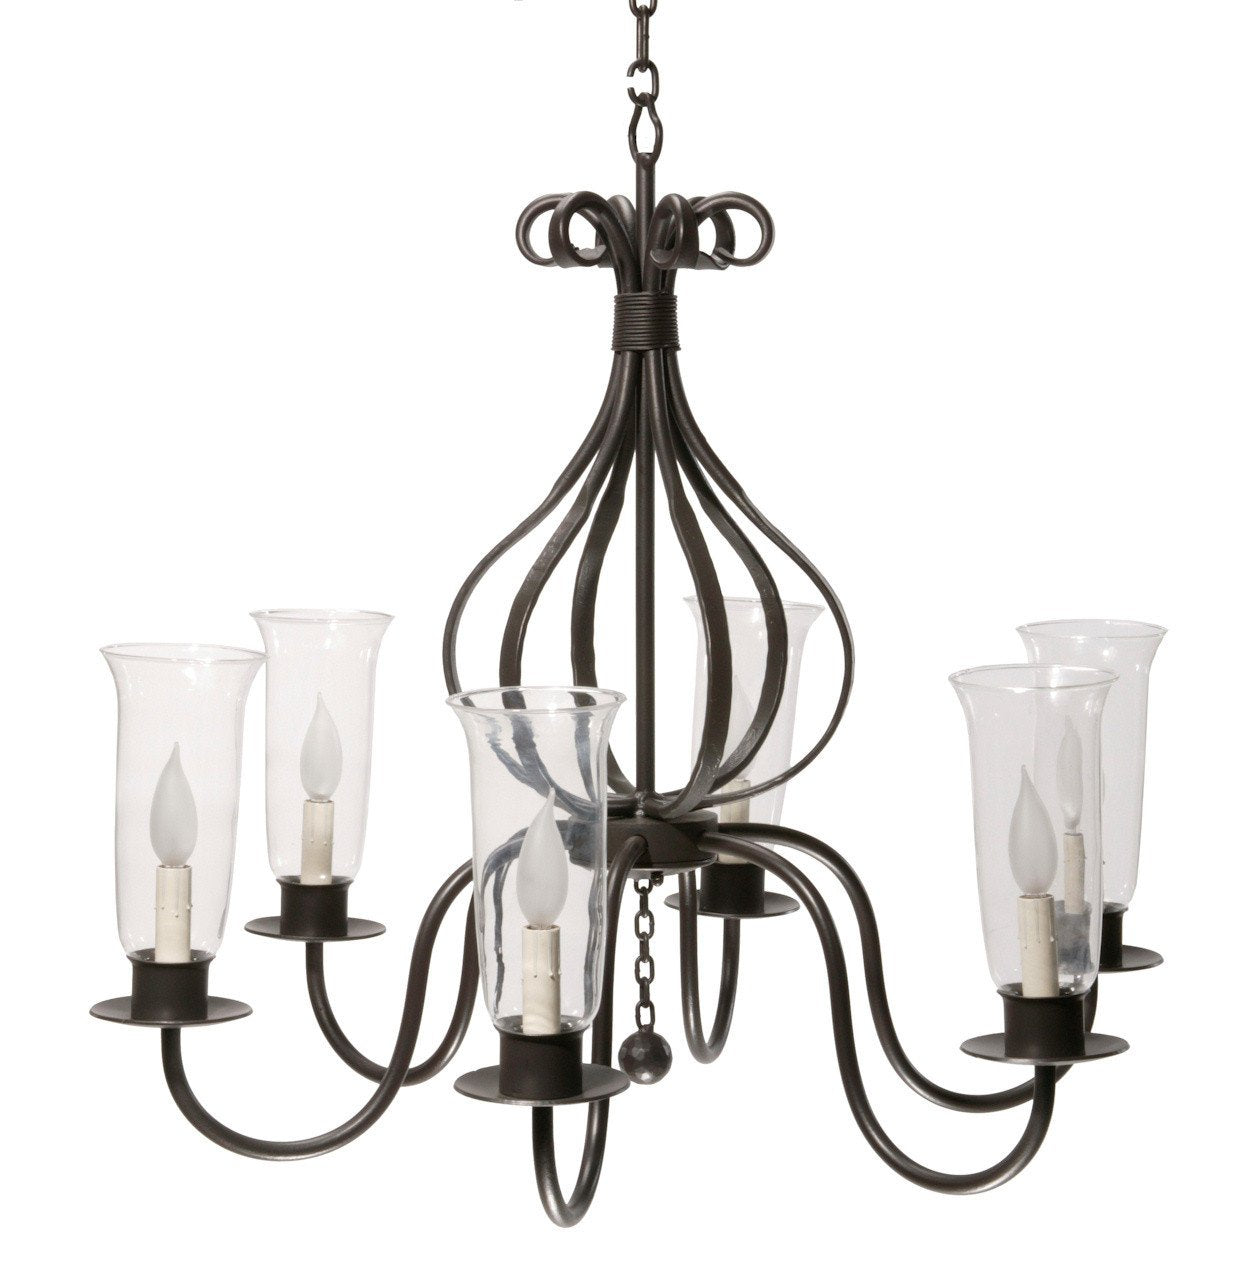 Stone County Carriage Arm Chandelier Williamsburg 5596